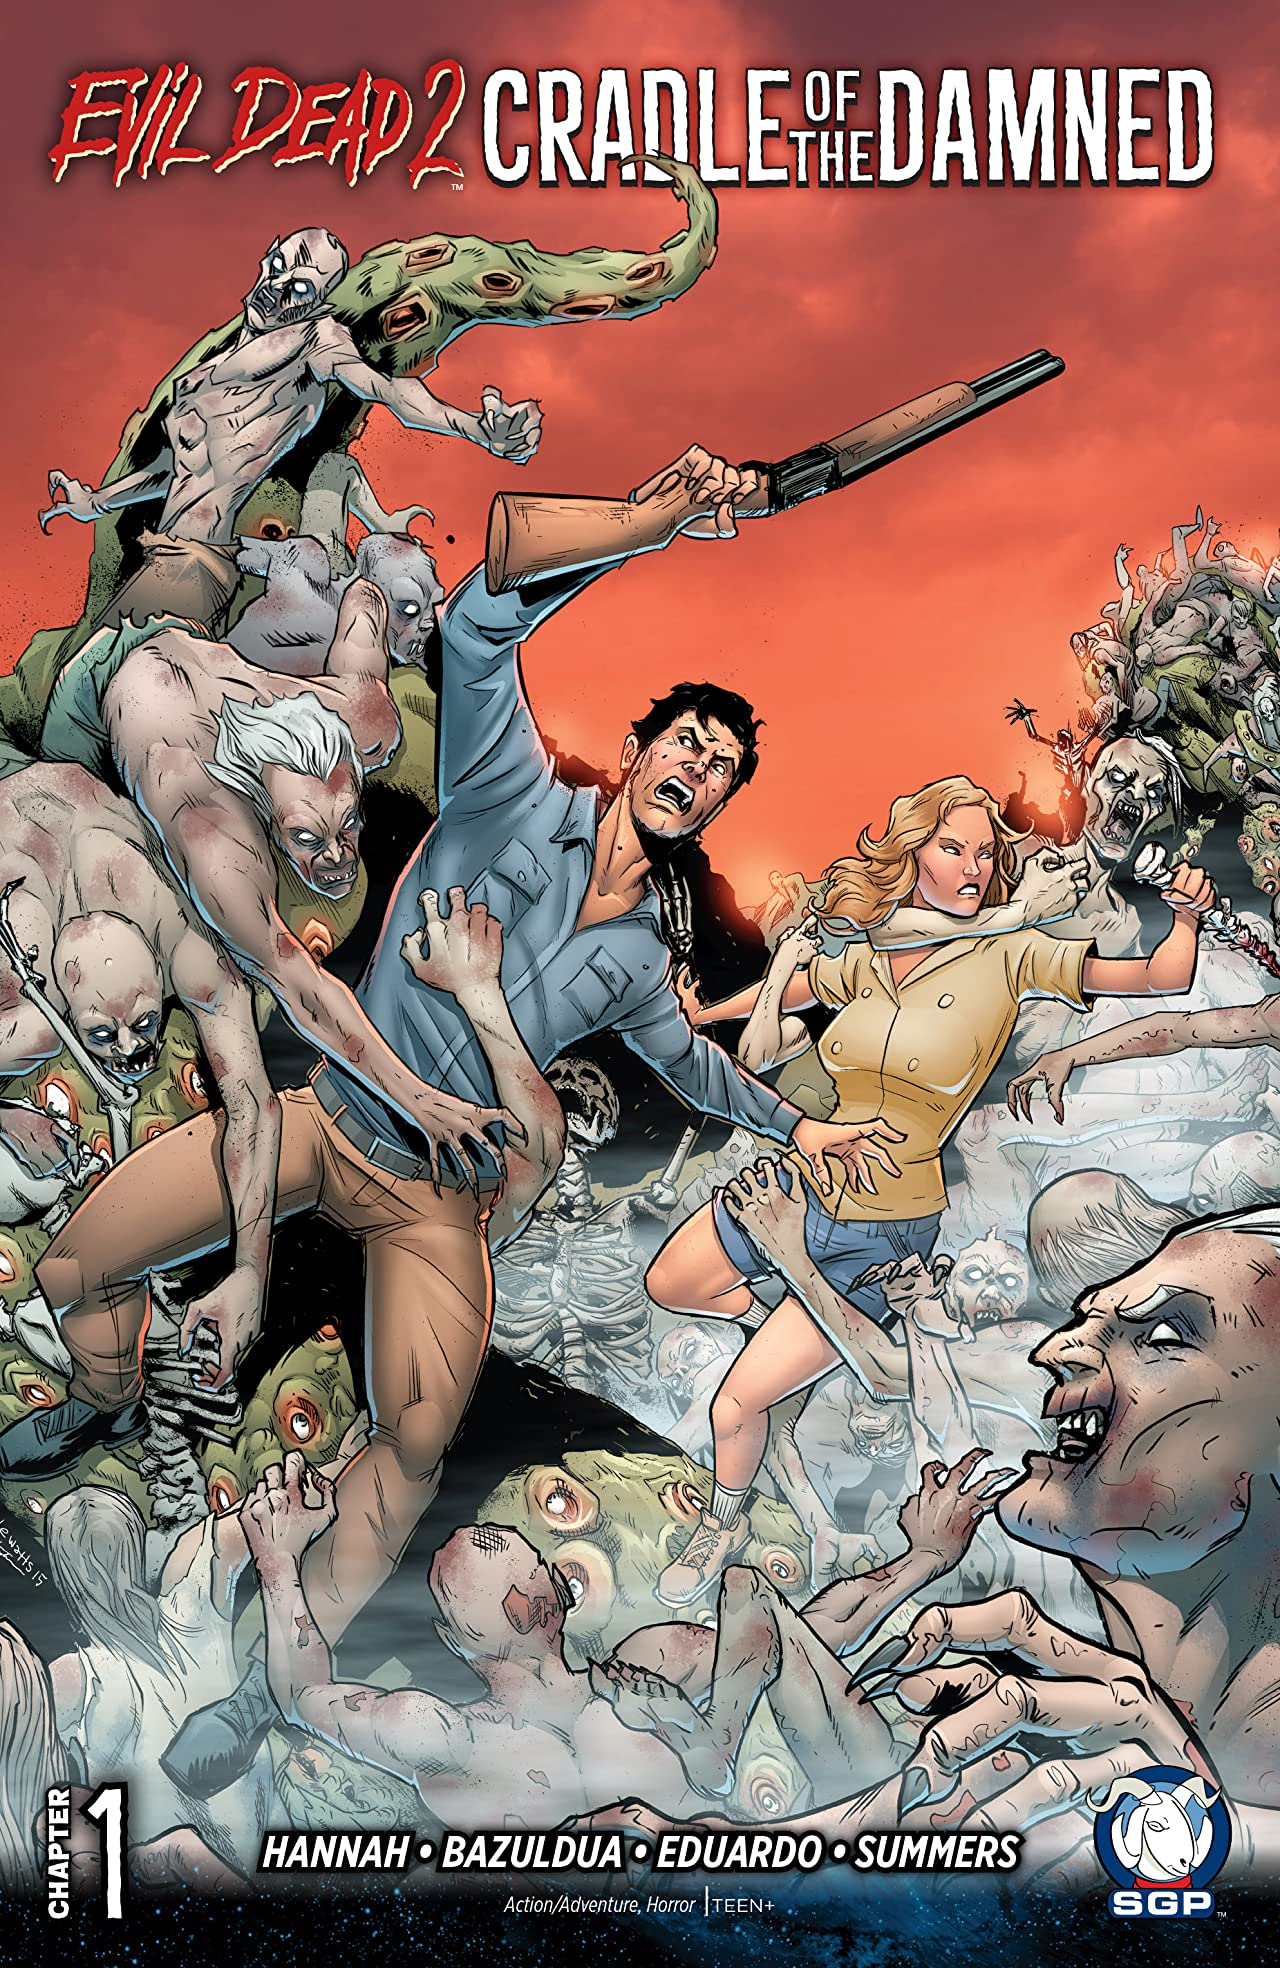 Evil Dead 2: Cradle of the Damned #1